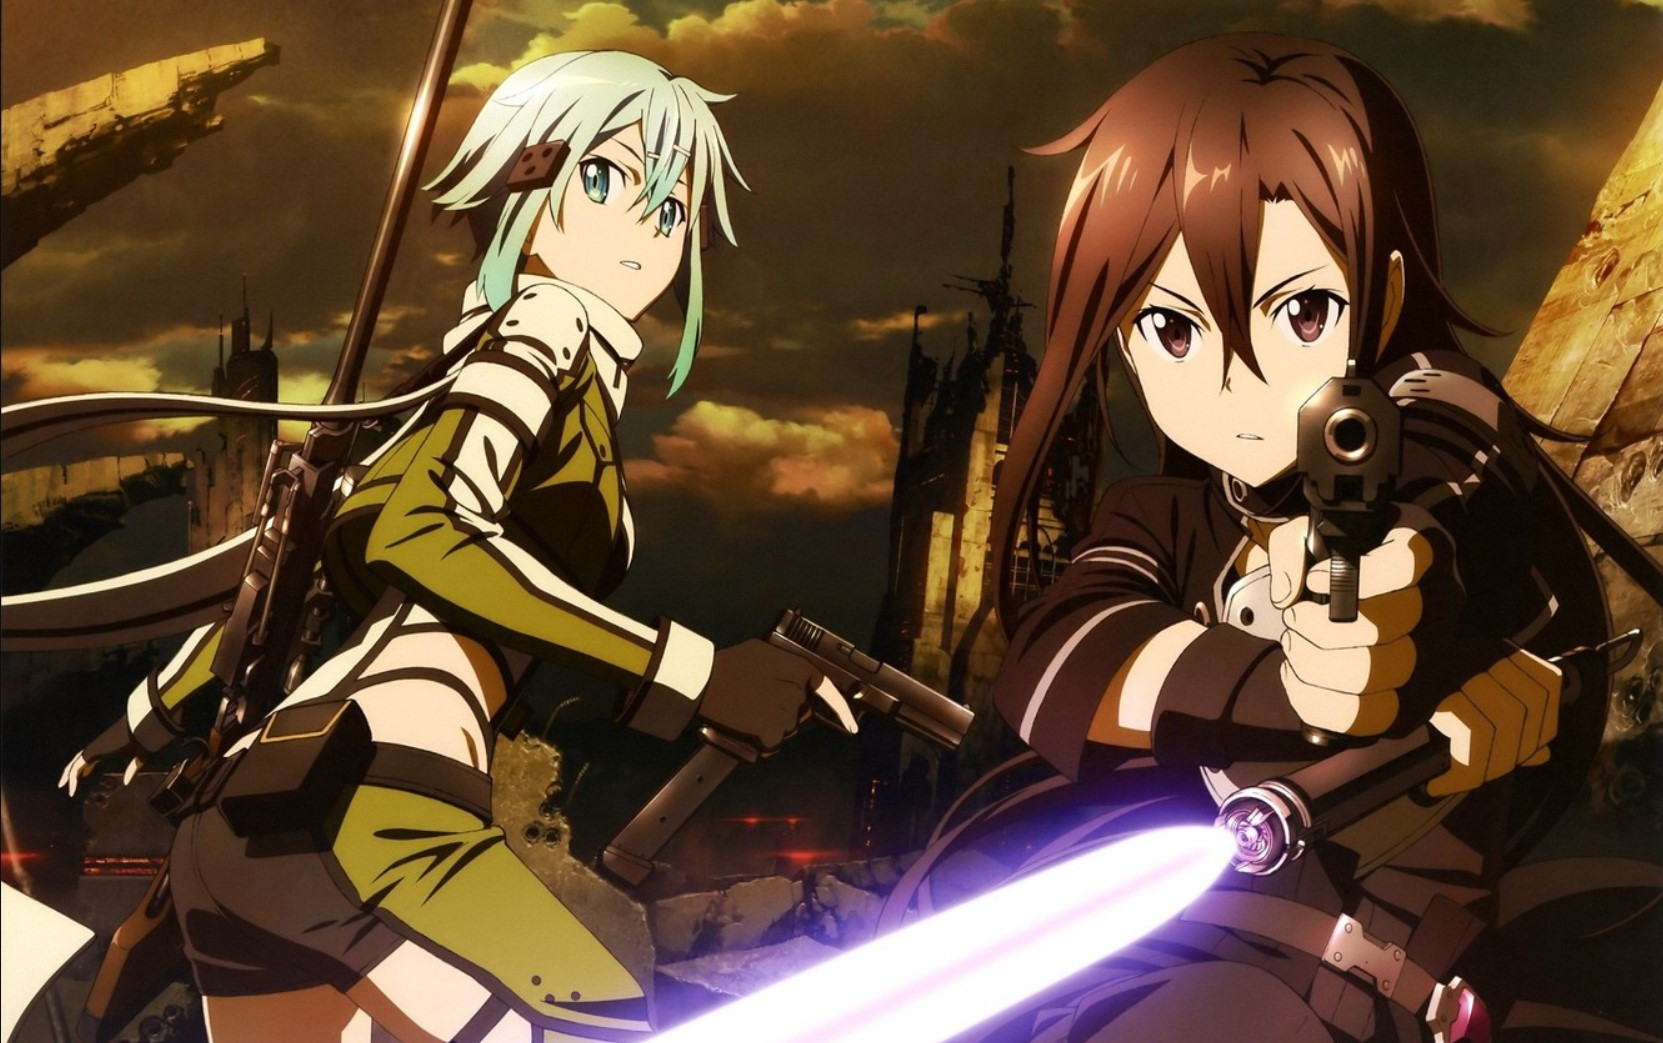 Sword Art Online (Season 2)- sword art online watch order guide